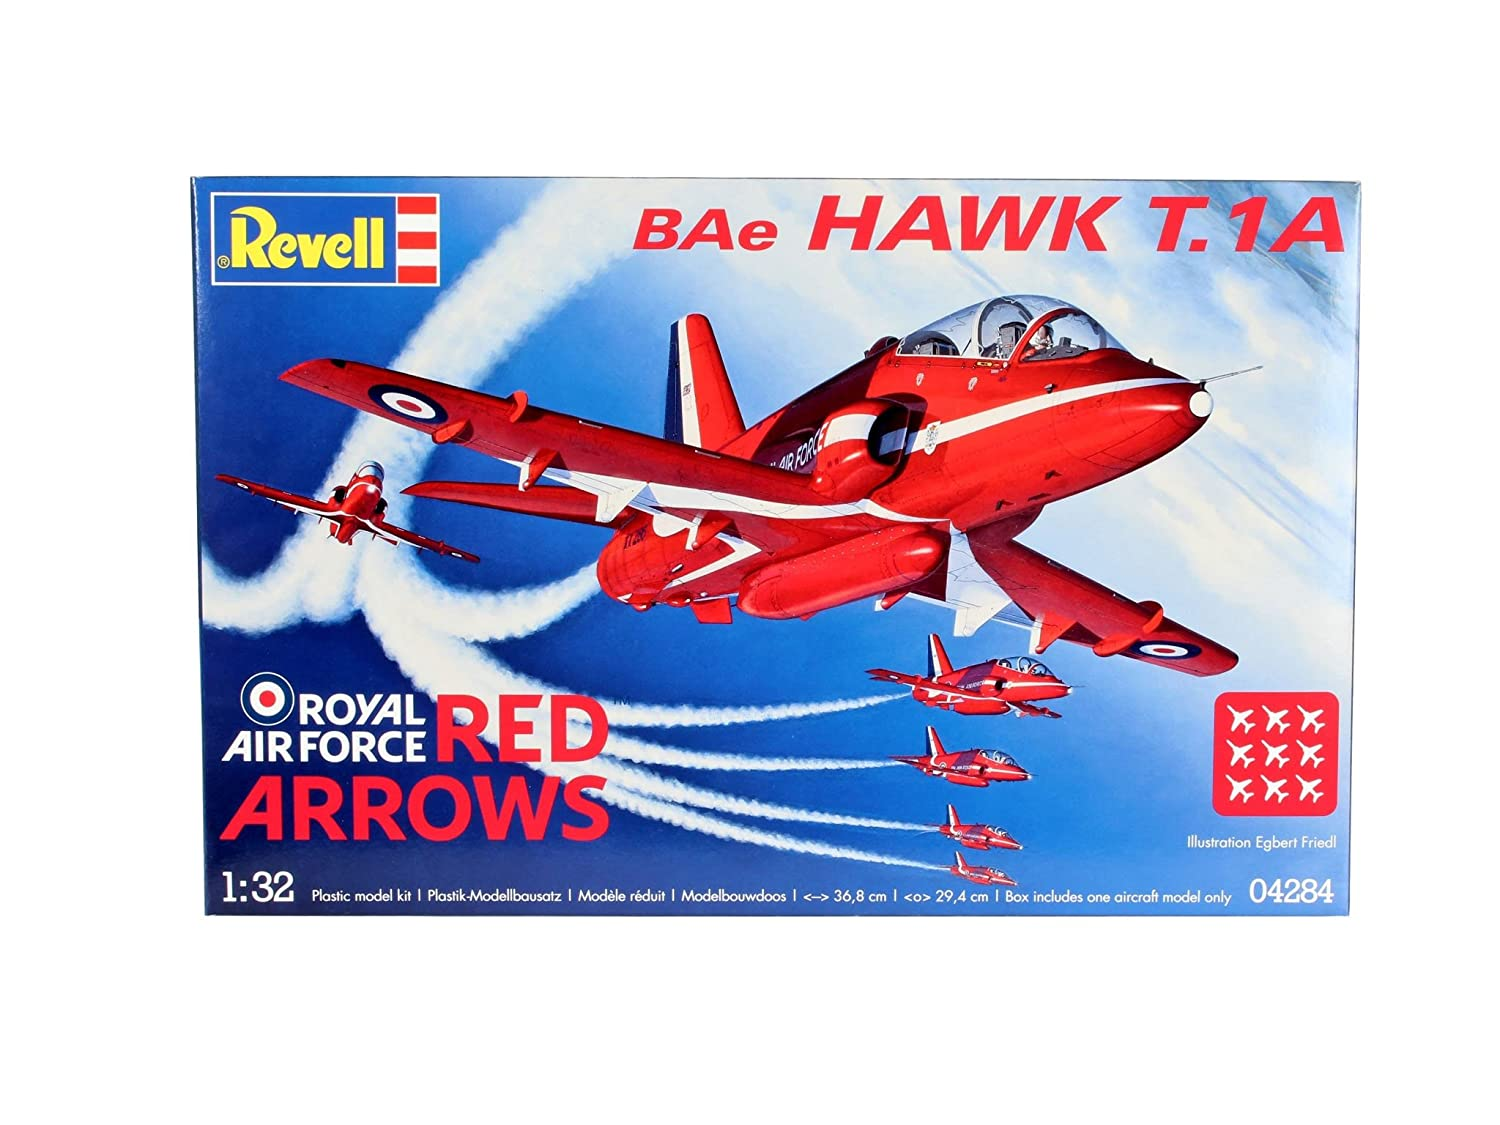 e85e106c21ac86 Revell 1 32 Scale Arrows Hawk (Red)  Amazon.co.uk  Toys   Games